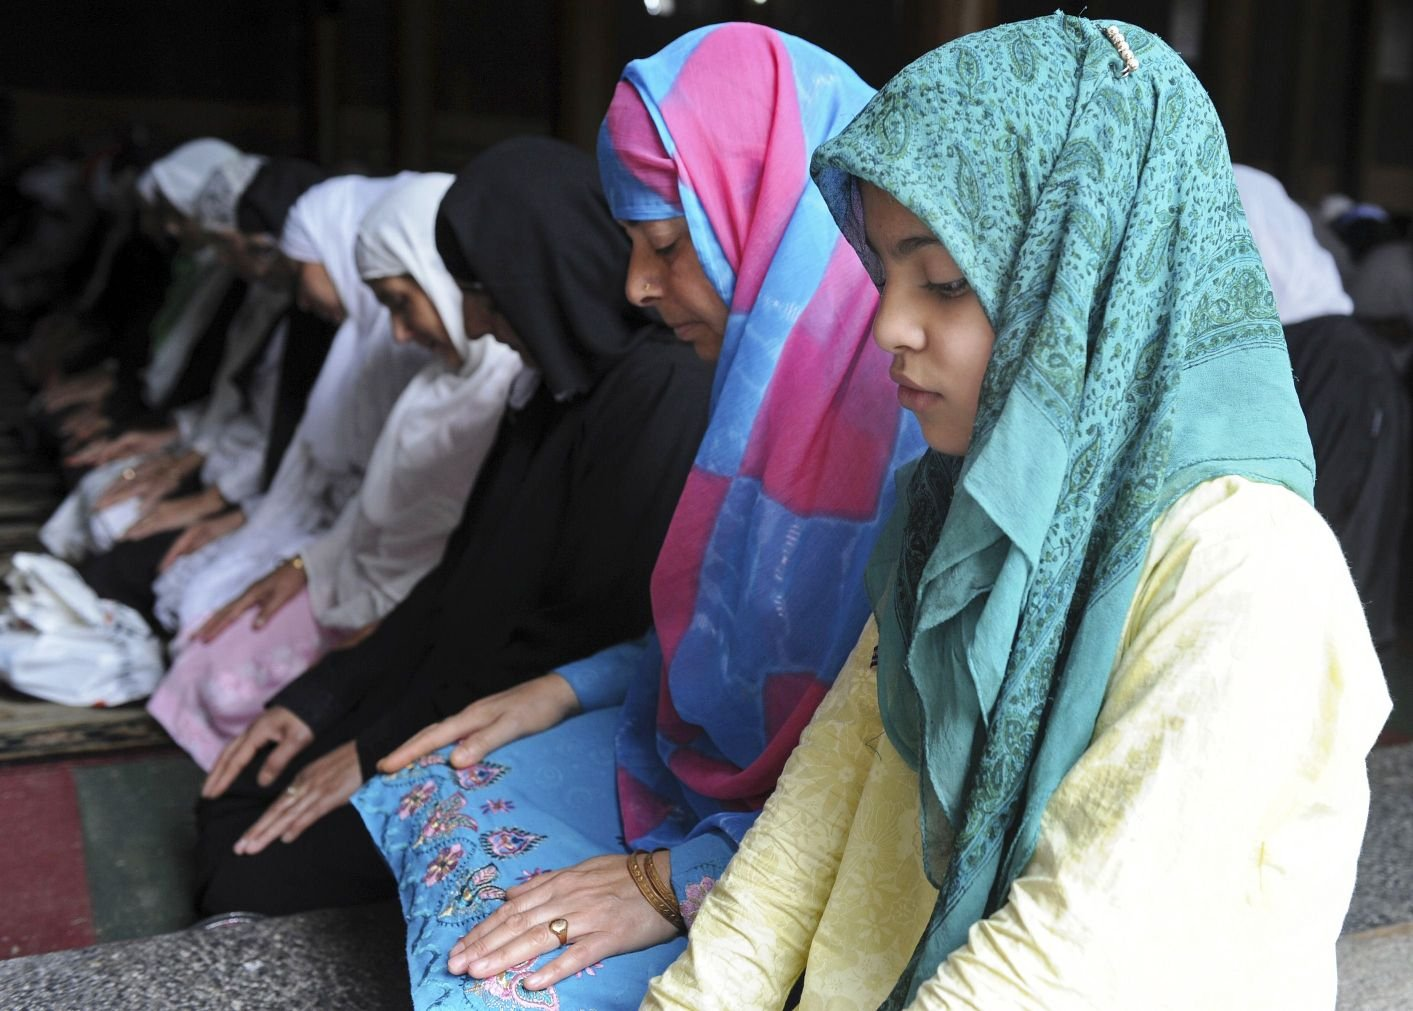 the rug looks like other praying mat but it is designed with special cushioning photo afp file